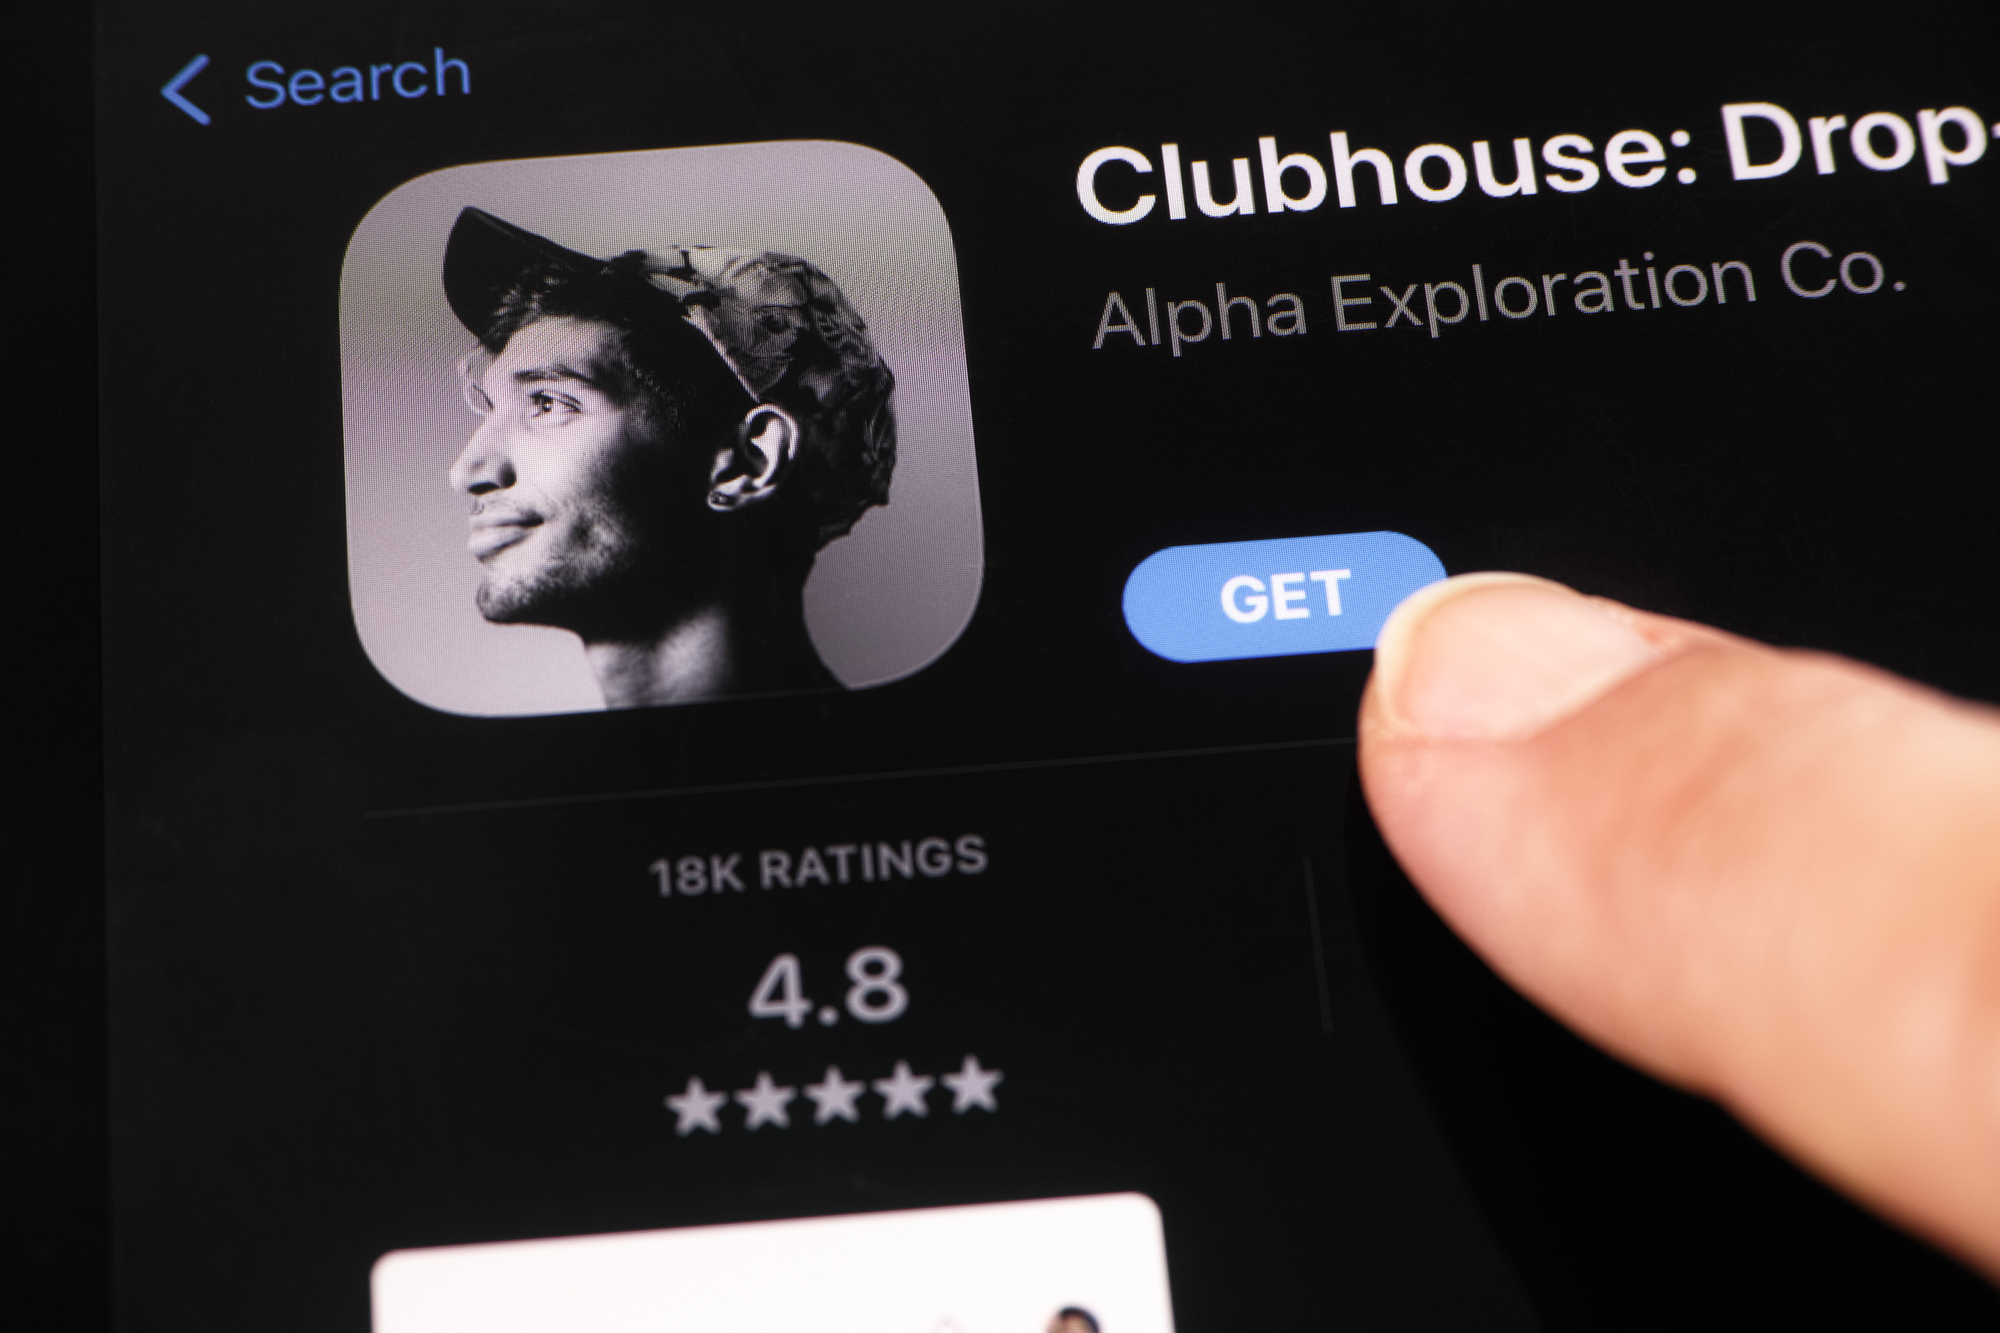 Close up shot of the Clubhouse app on the screen of an Ipad